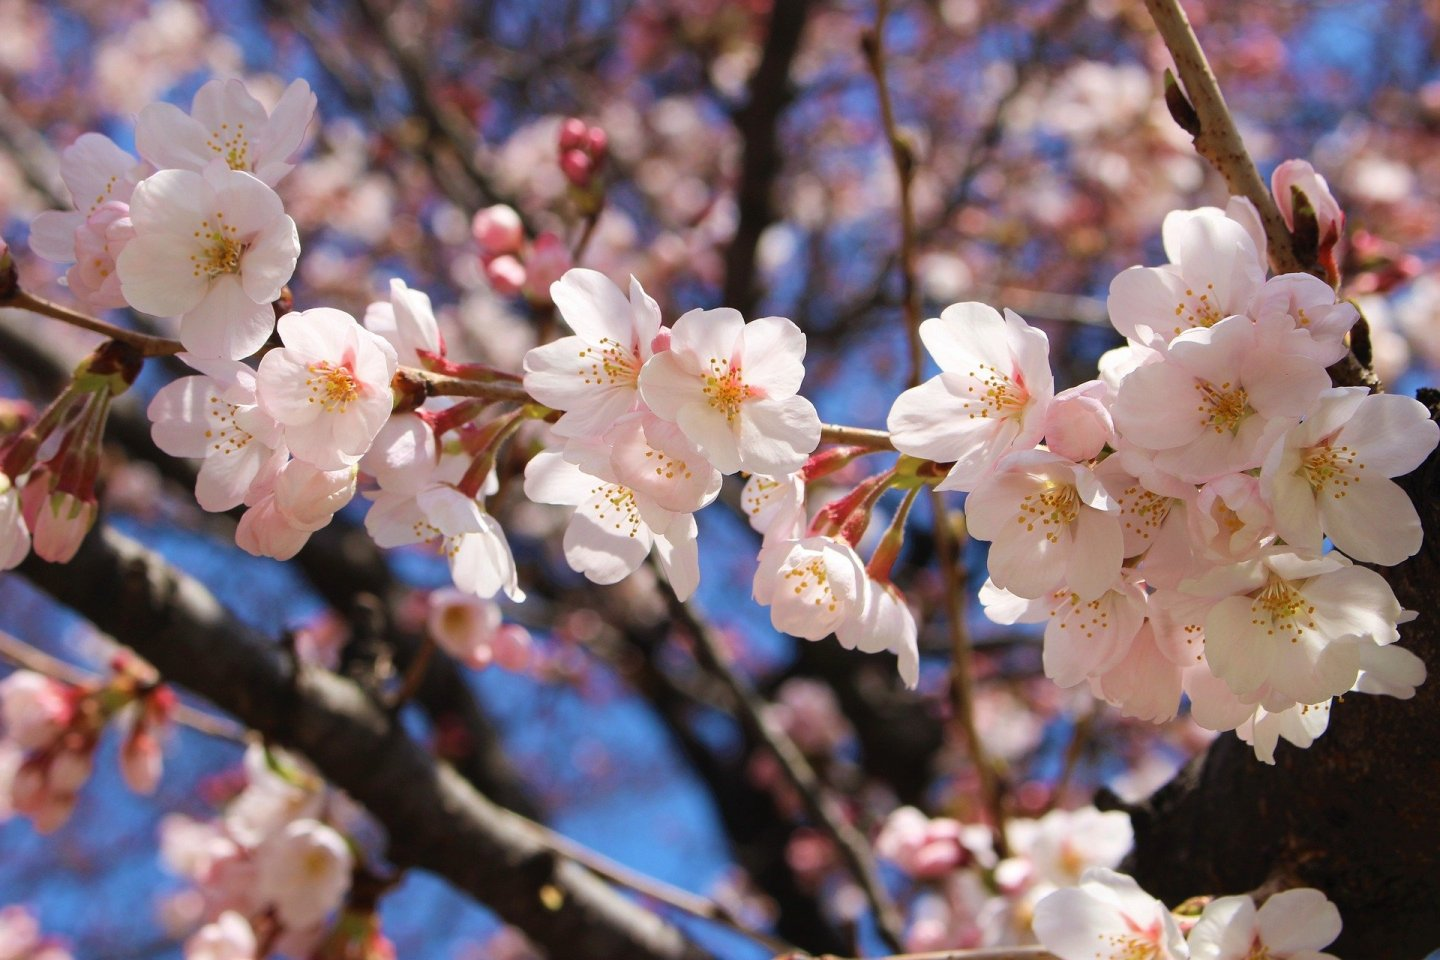 Cherry blossoms have inspired artists throughout history